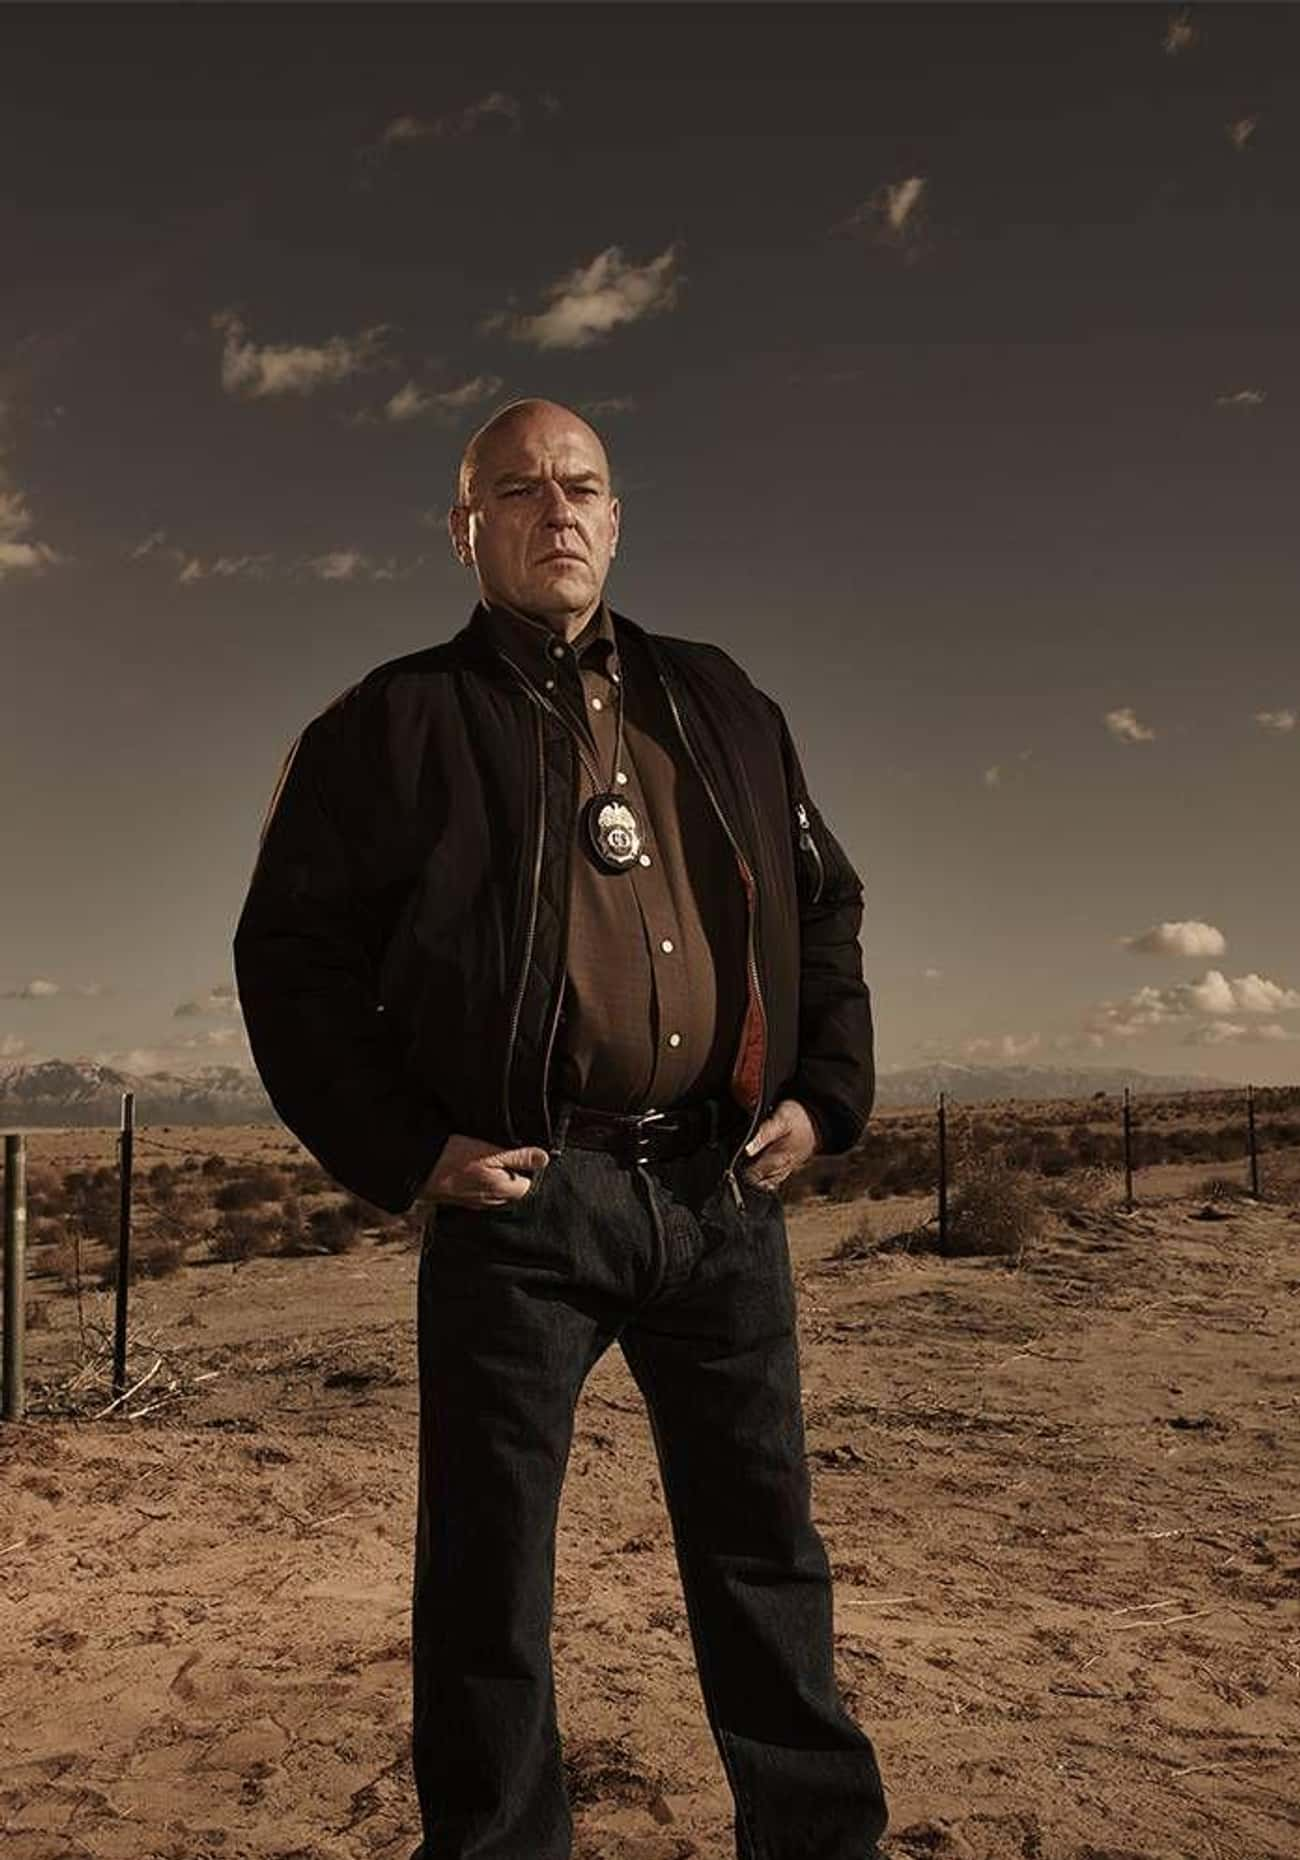 Dean Norris Wanted To Break Ou is listed (or ranked) 1 on the list 10 Actors Who Actually Requested To Have Their Characters Written Out Of Popular Franchises